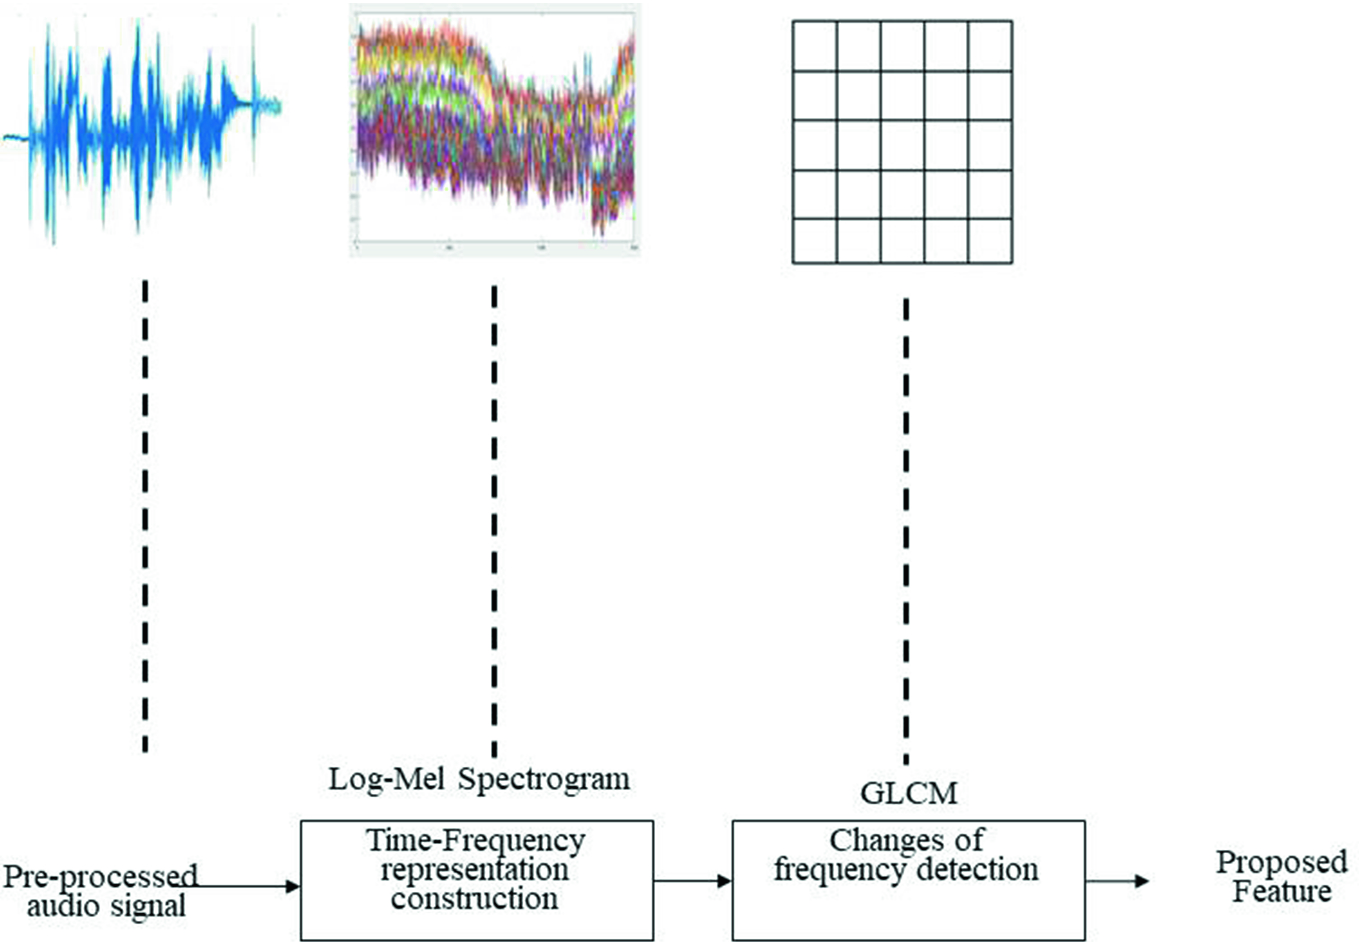 Fusion of Log-Mel Spectrogram and GLCM Feature in Acoustic Scene